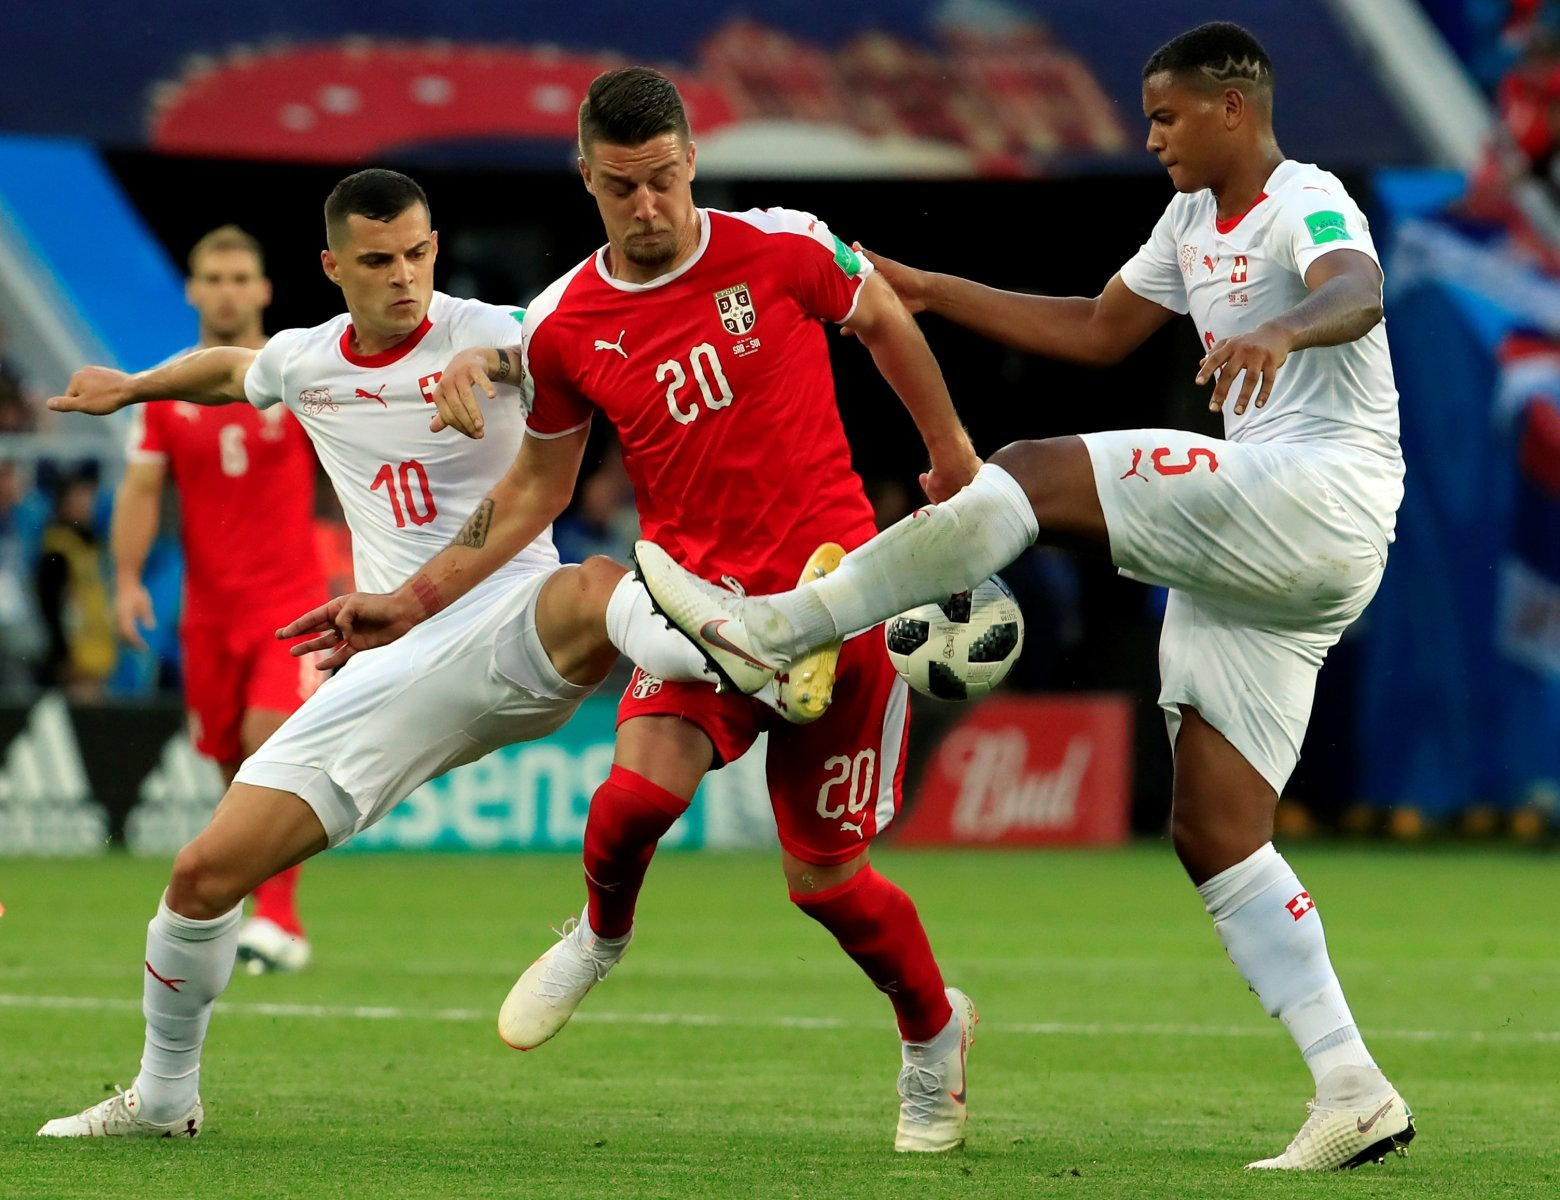 Tottenham must forget Sergej Milinkovic-Savic and scout 2 additions instead